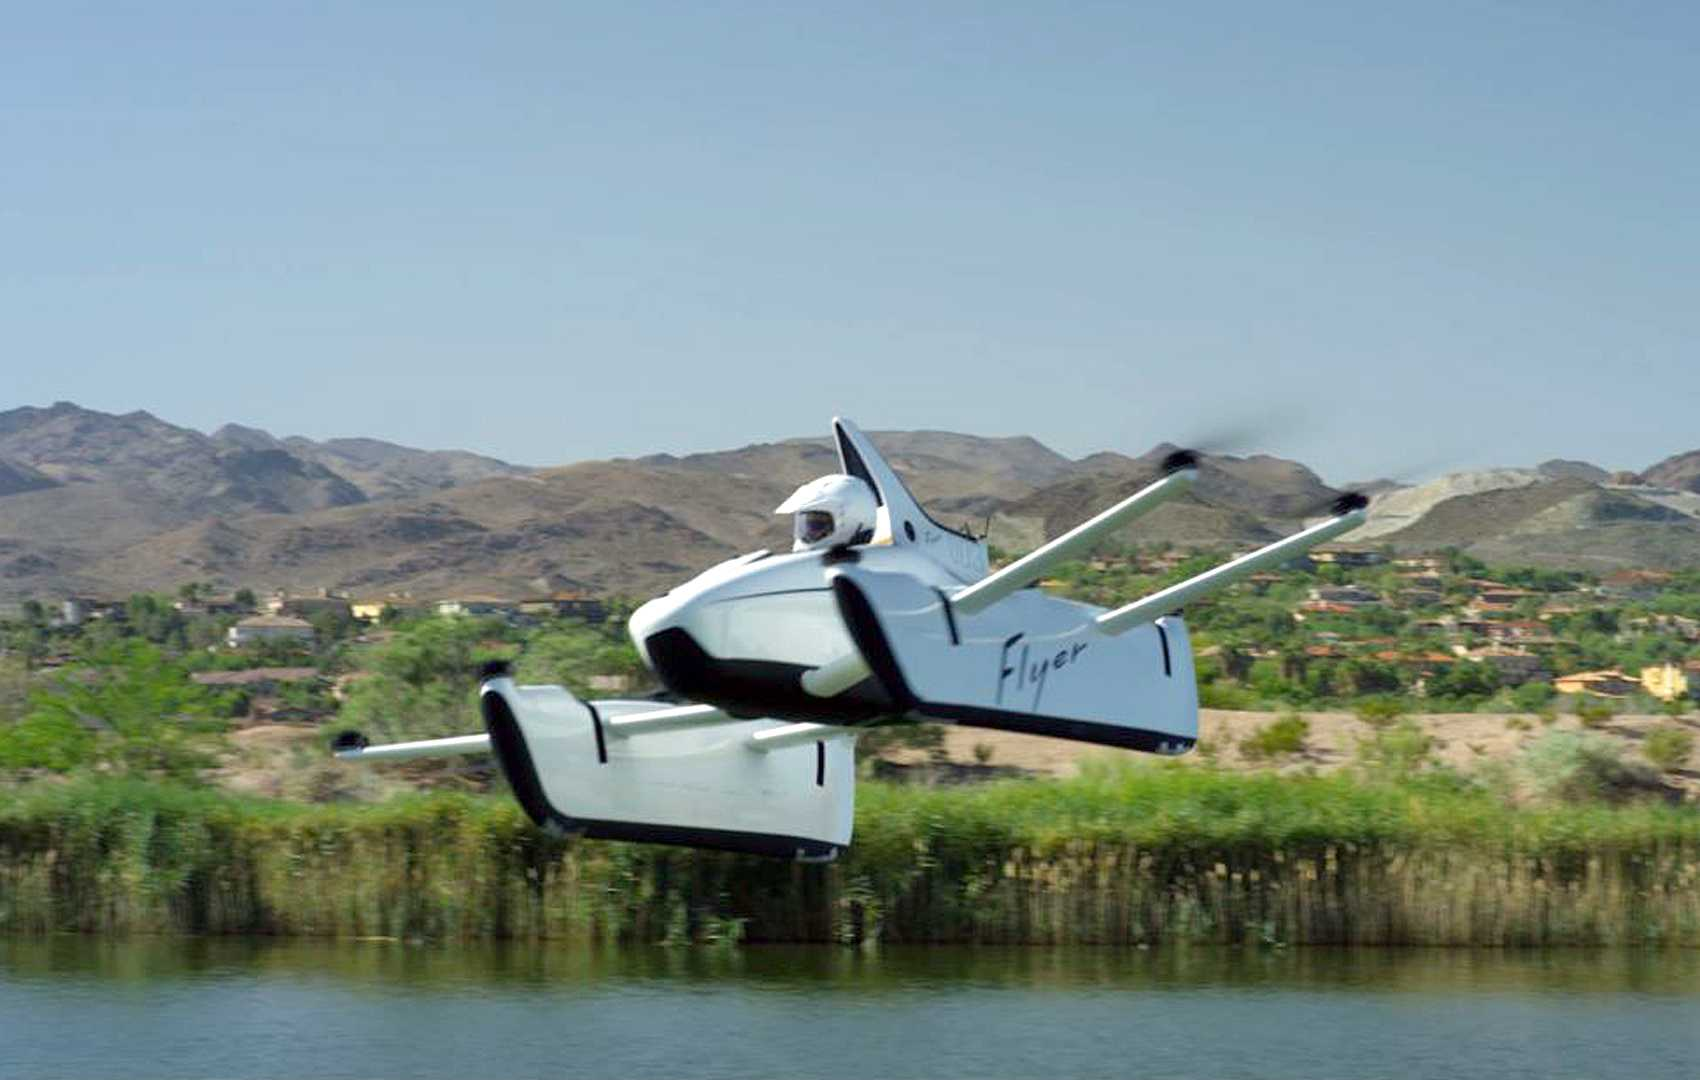 Kitty Hawk's personal flying vehicle takes to the skies